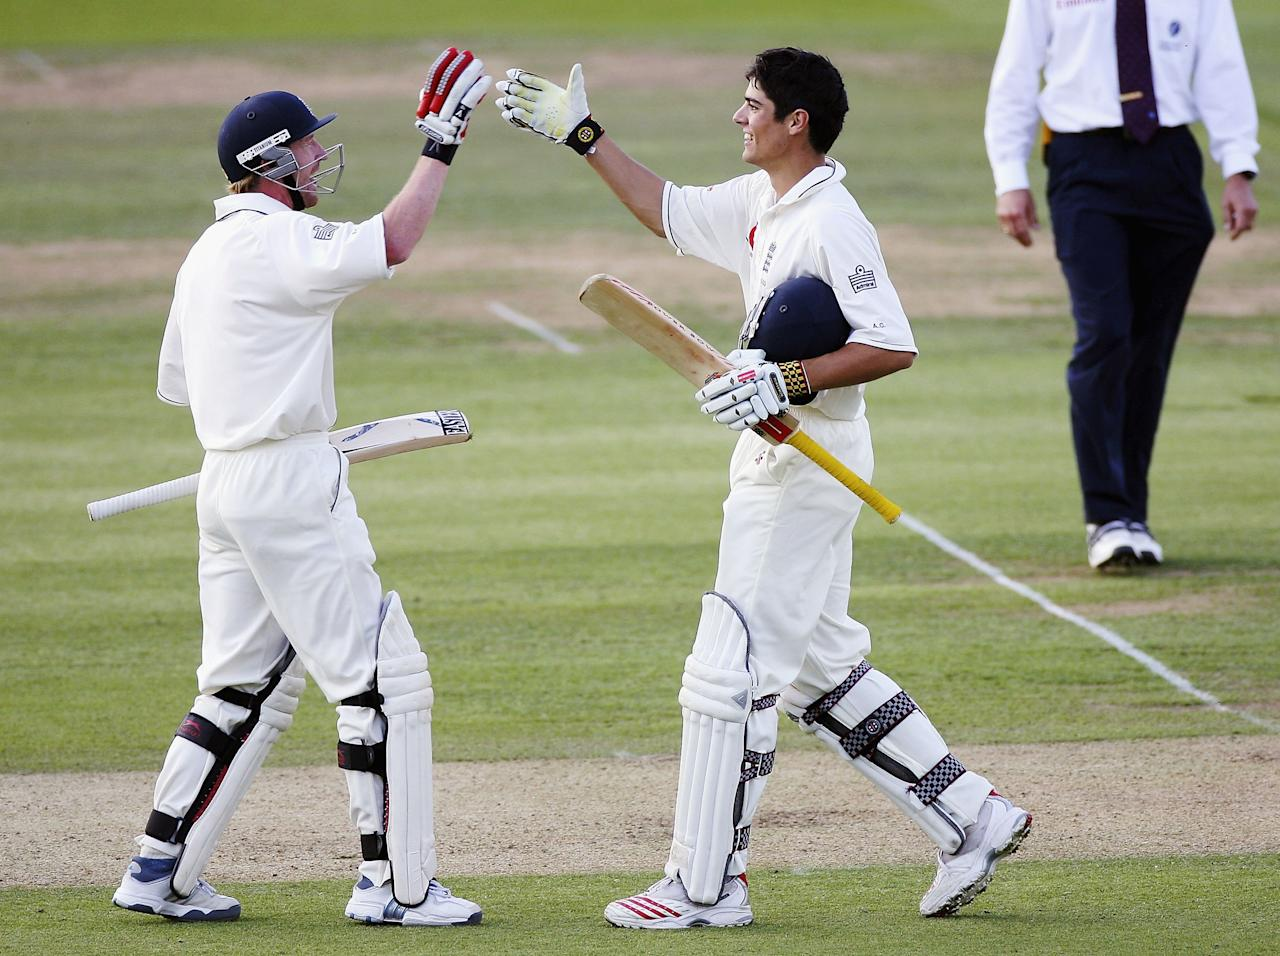 LONDON - JULY 13:  England batsmen Paul Collingwood (L) and Alastair Cook (R) shake hands after Cook had reached his century during the first day of the npower test match between England and Pakistan at Lords on July 13, 2006, in London, England.  (Photo by Stu Forster/Getty Images)